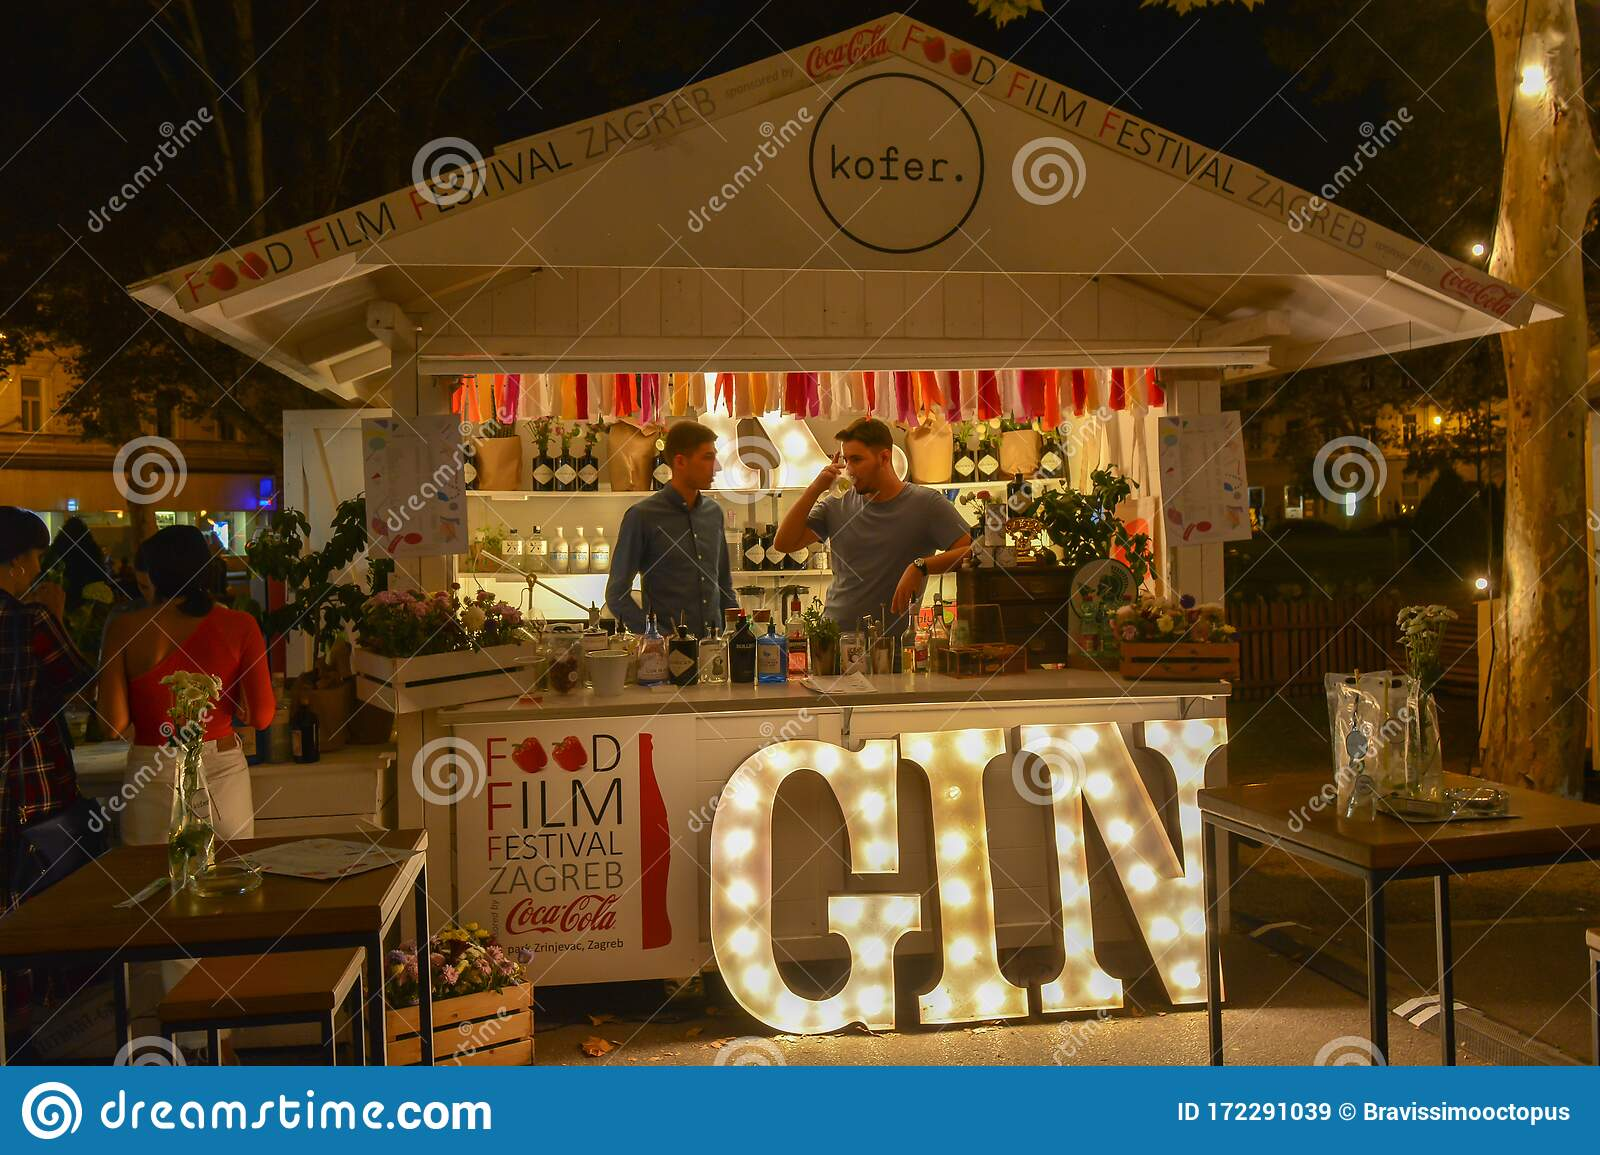 Zagreb Croatia September 12 2019 A Stand With Two Unidentified Man Of The Zagreb Food Film Festival Movies And Fresh Drinks Editorial Stock Image Image Of Lights Festival 172291039